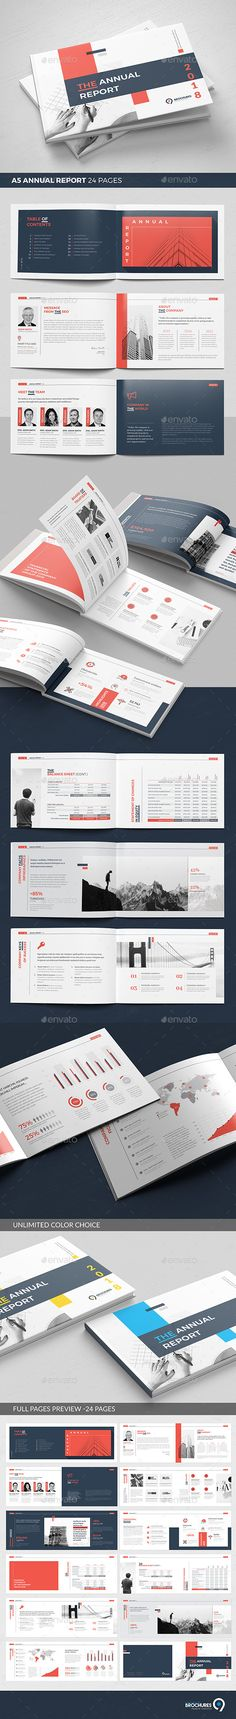 A5 Landscape Annual Report Brochure Template InDesign INDD - 24 Custom Layout Pages